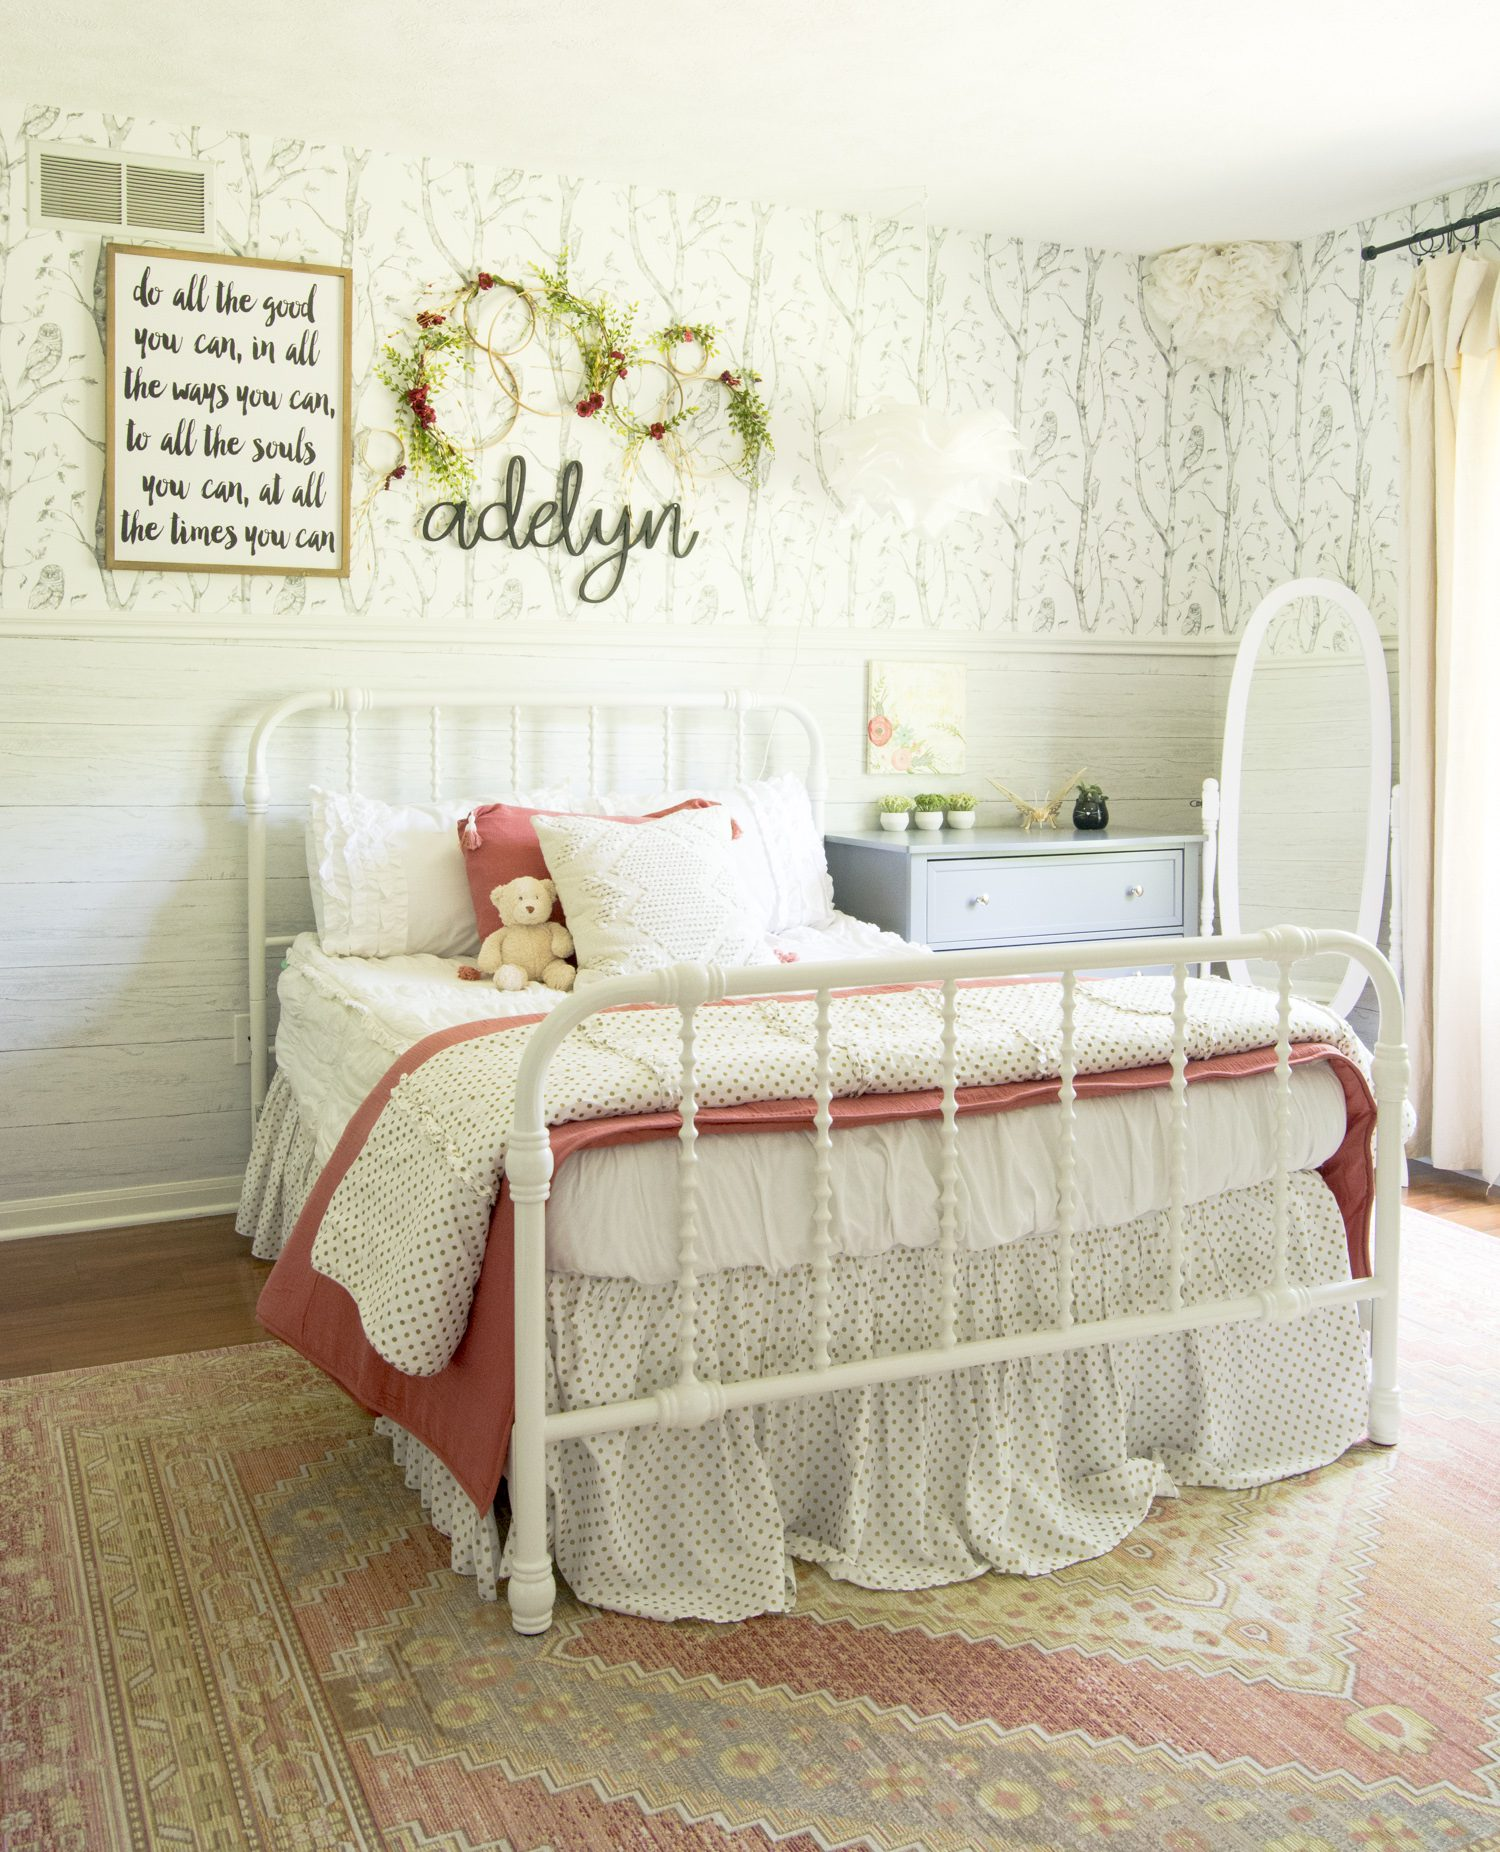 Girls bed frame and bedding